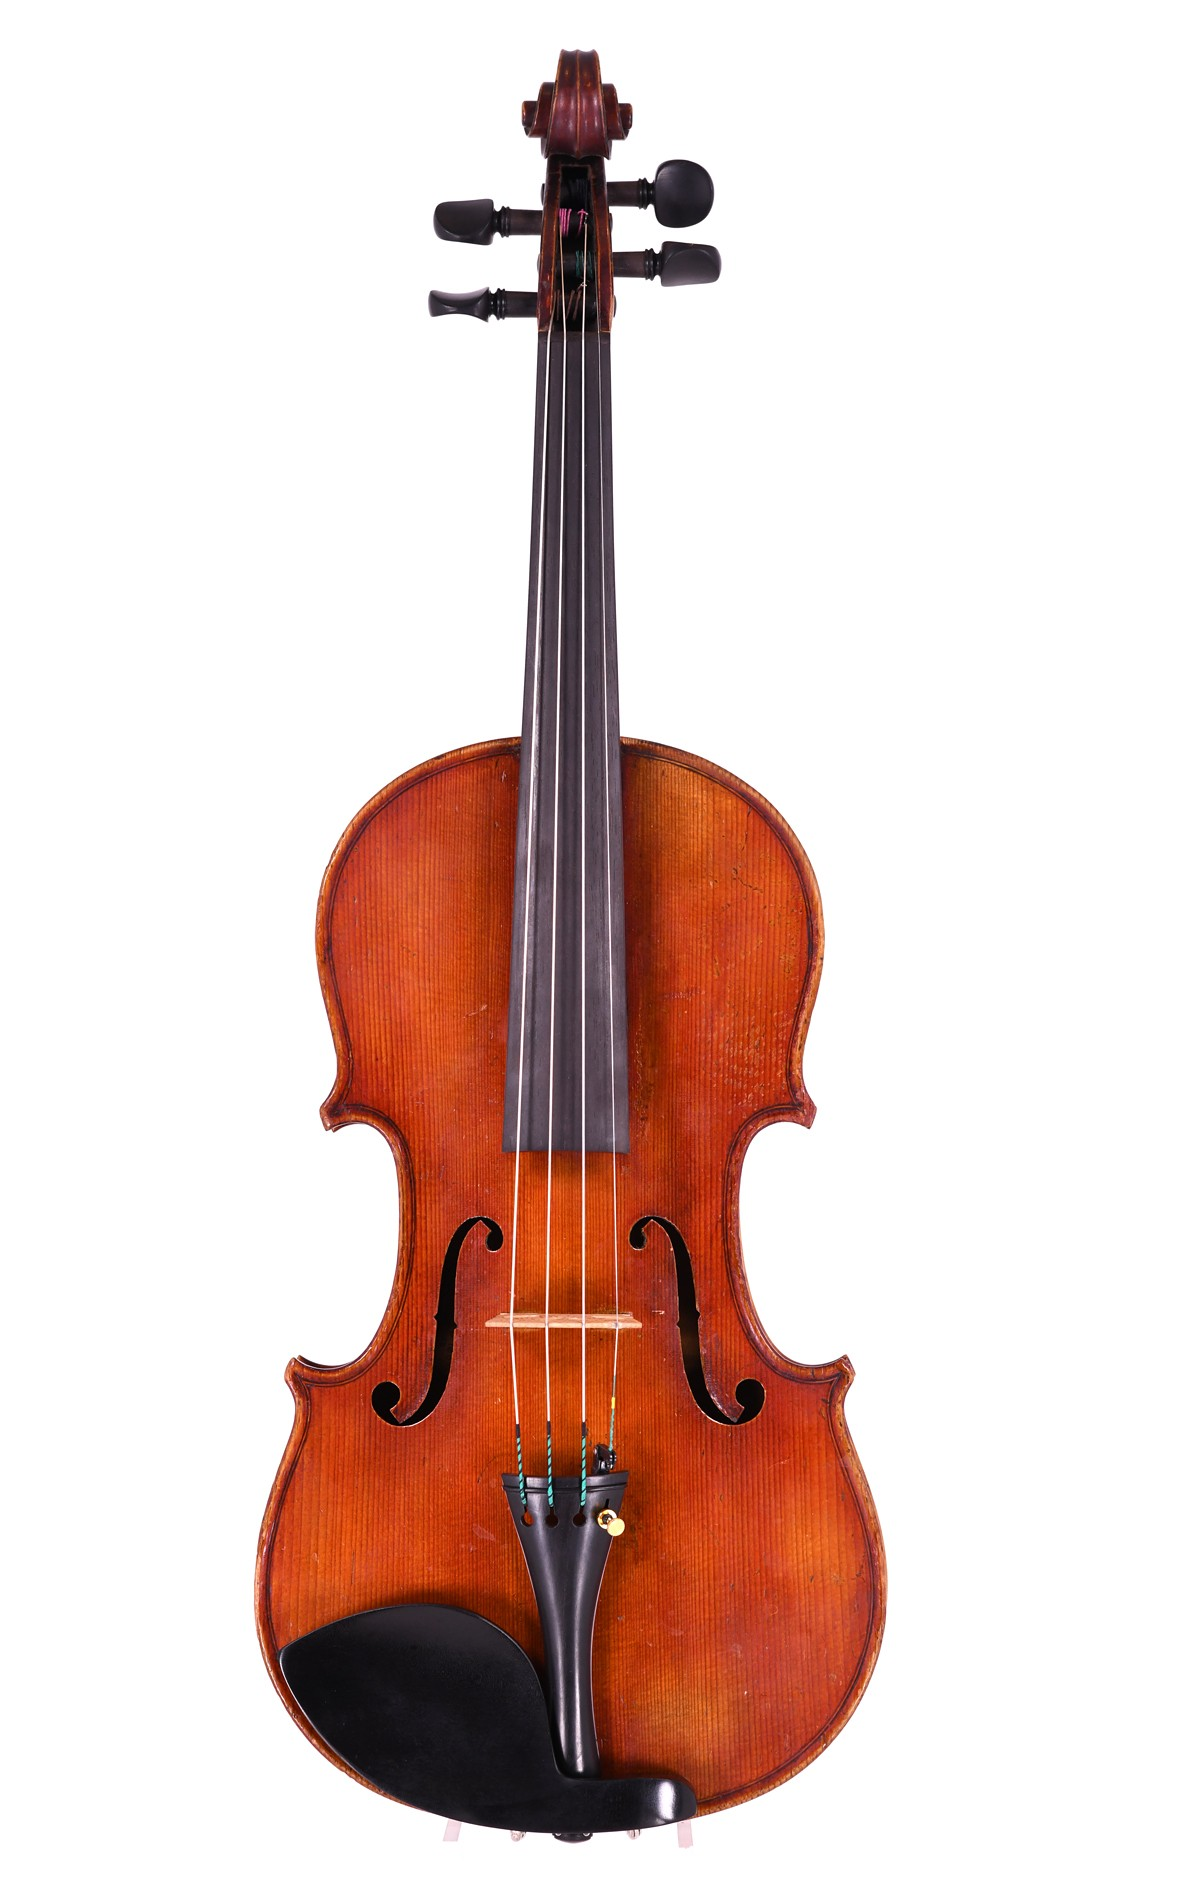 George Adolphe Chanot, G. A. Chanot Violin #212